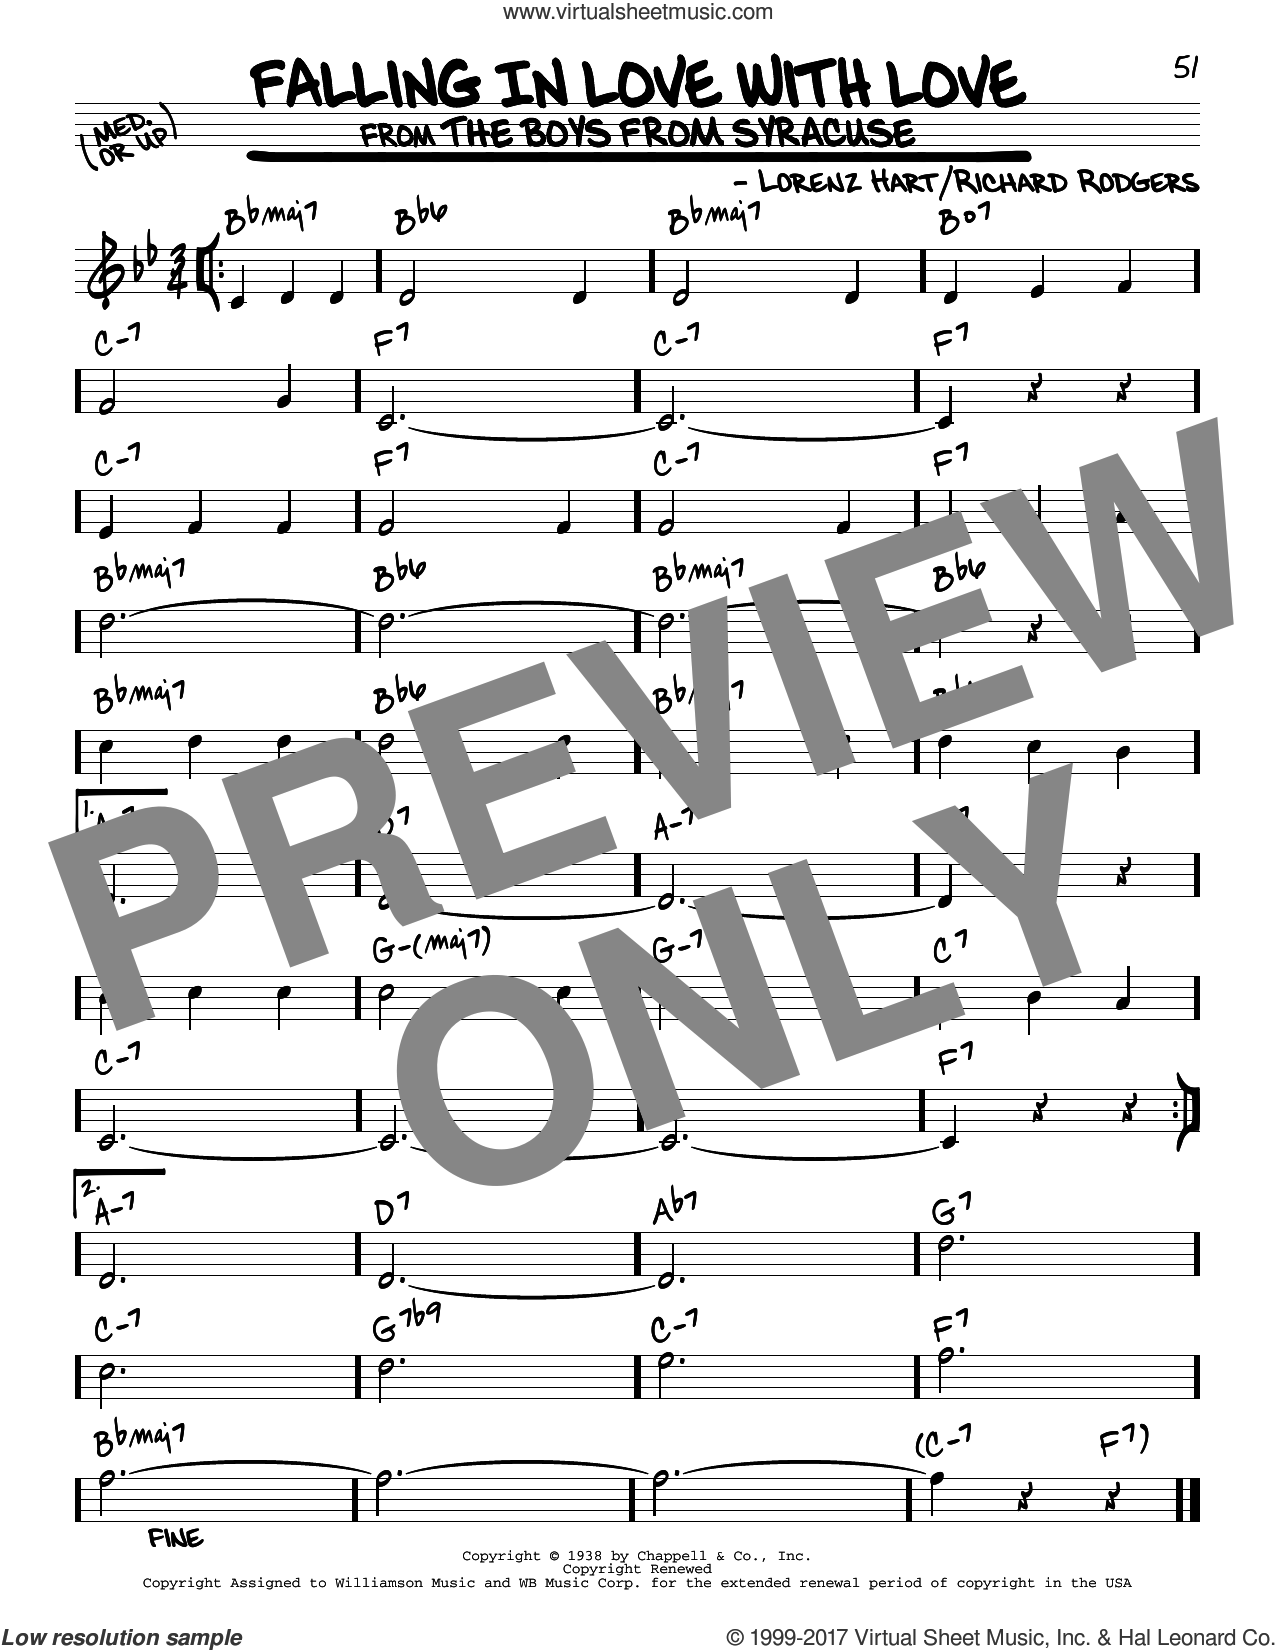 Falling In Love With Love sheet music for voice and other instruments (real book) by Rodgers & Hart, Lorenz Hart and Richard Rodgers, intermediate skill level